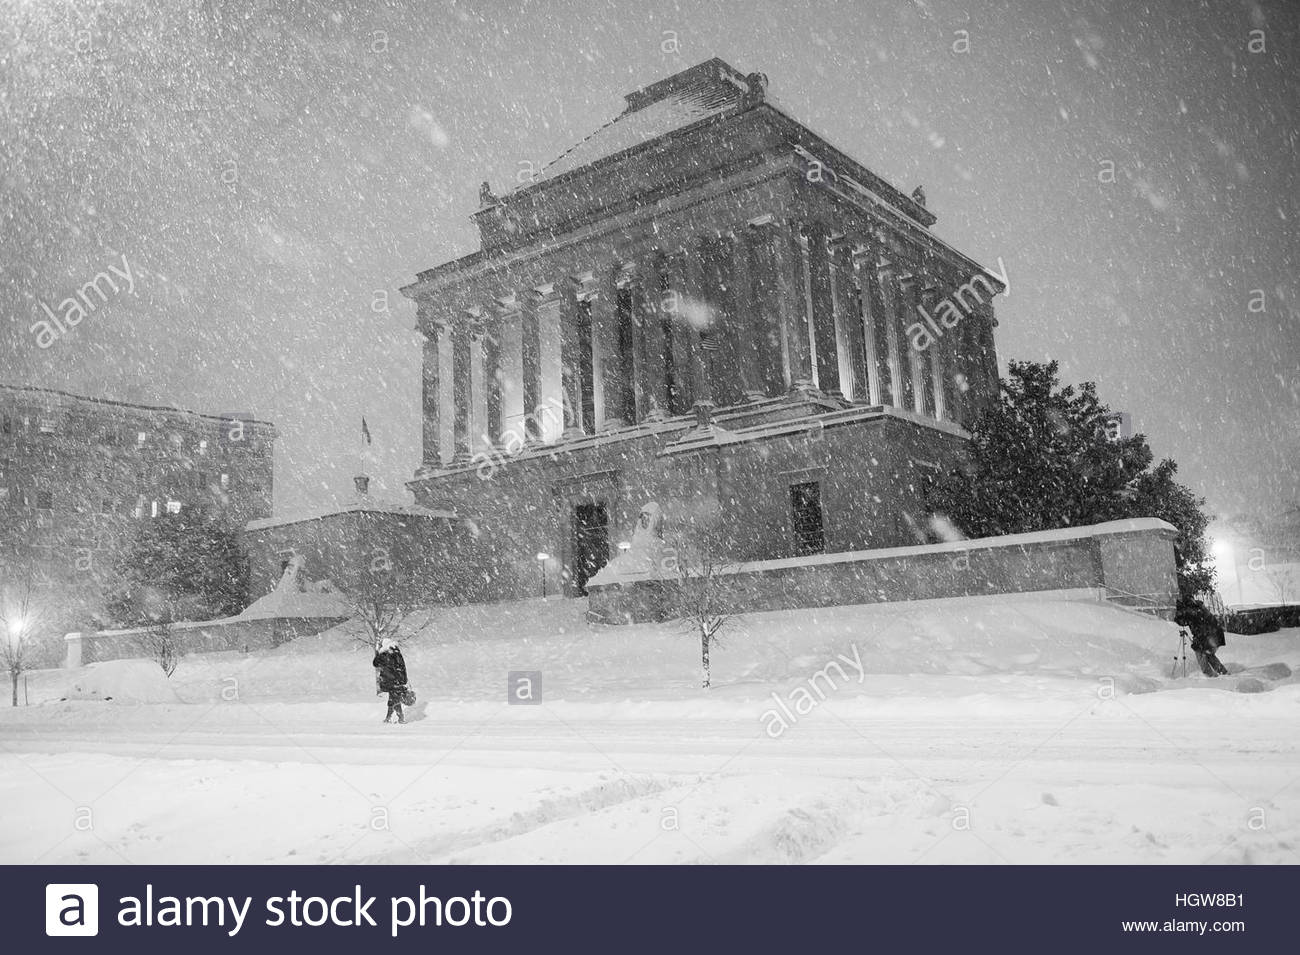 A photographer captures night photos of the House of Temple, Scottish Rite of Freemasonry on 16th Street. - Stock Image